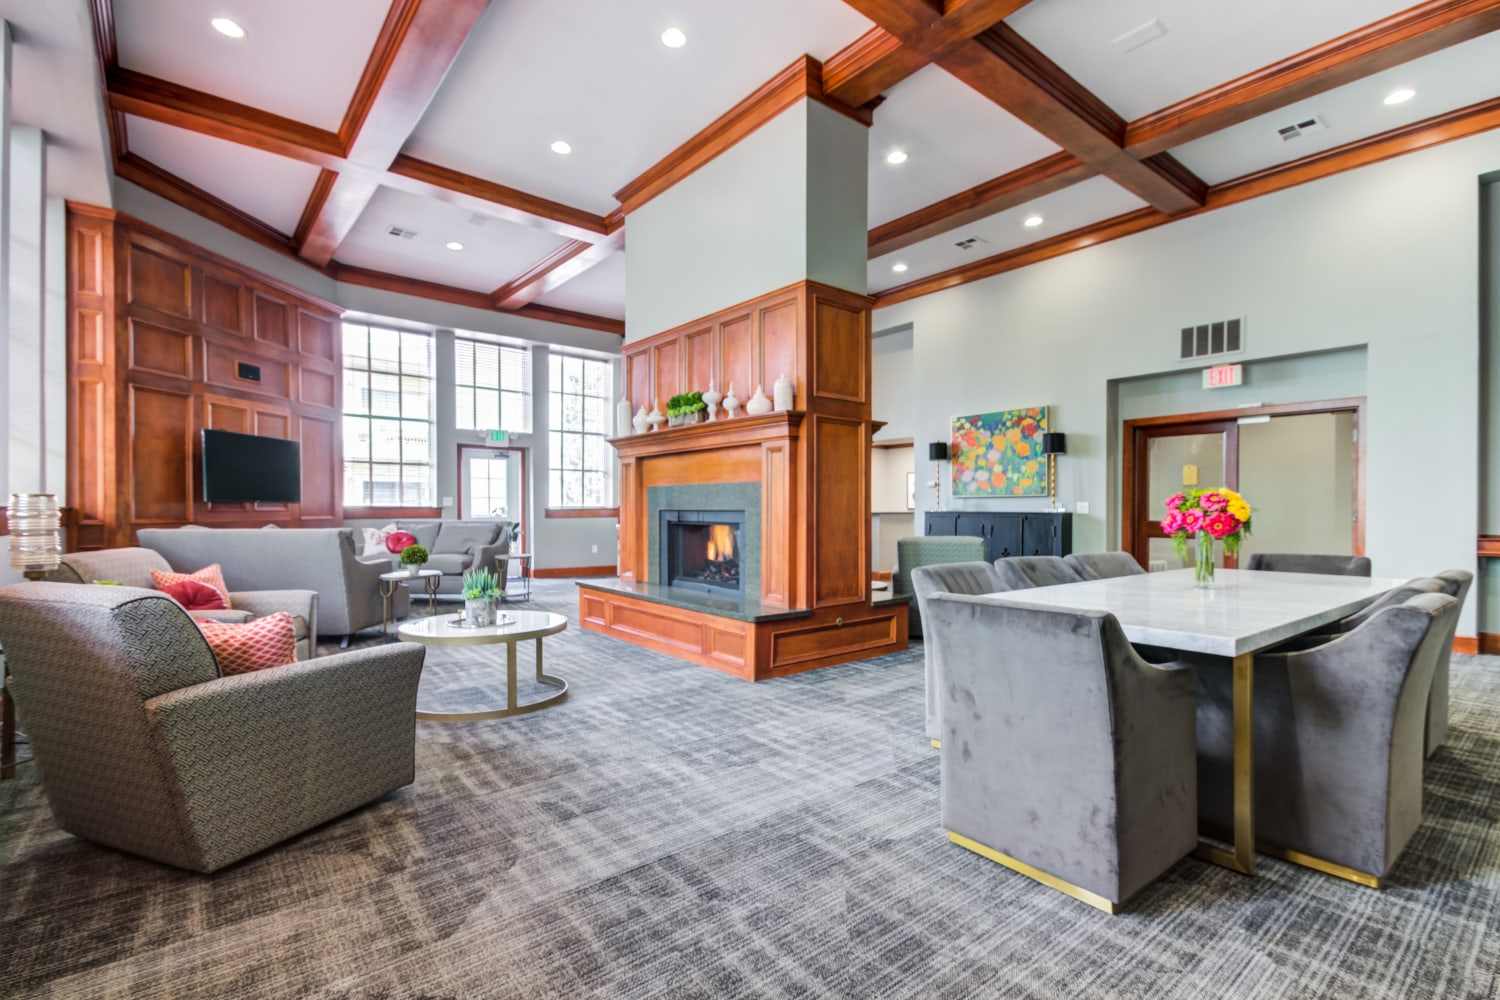 Clubhouse at Irving Schoolhouse Apartments in Salt Lake City, Utah